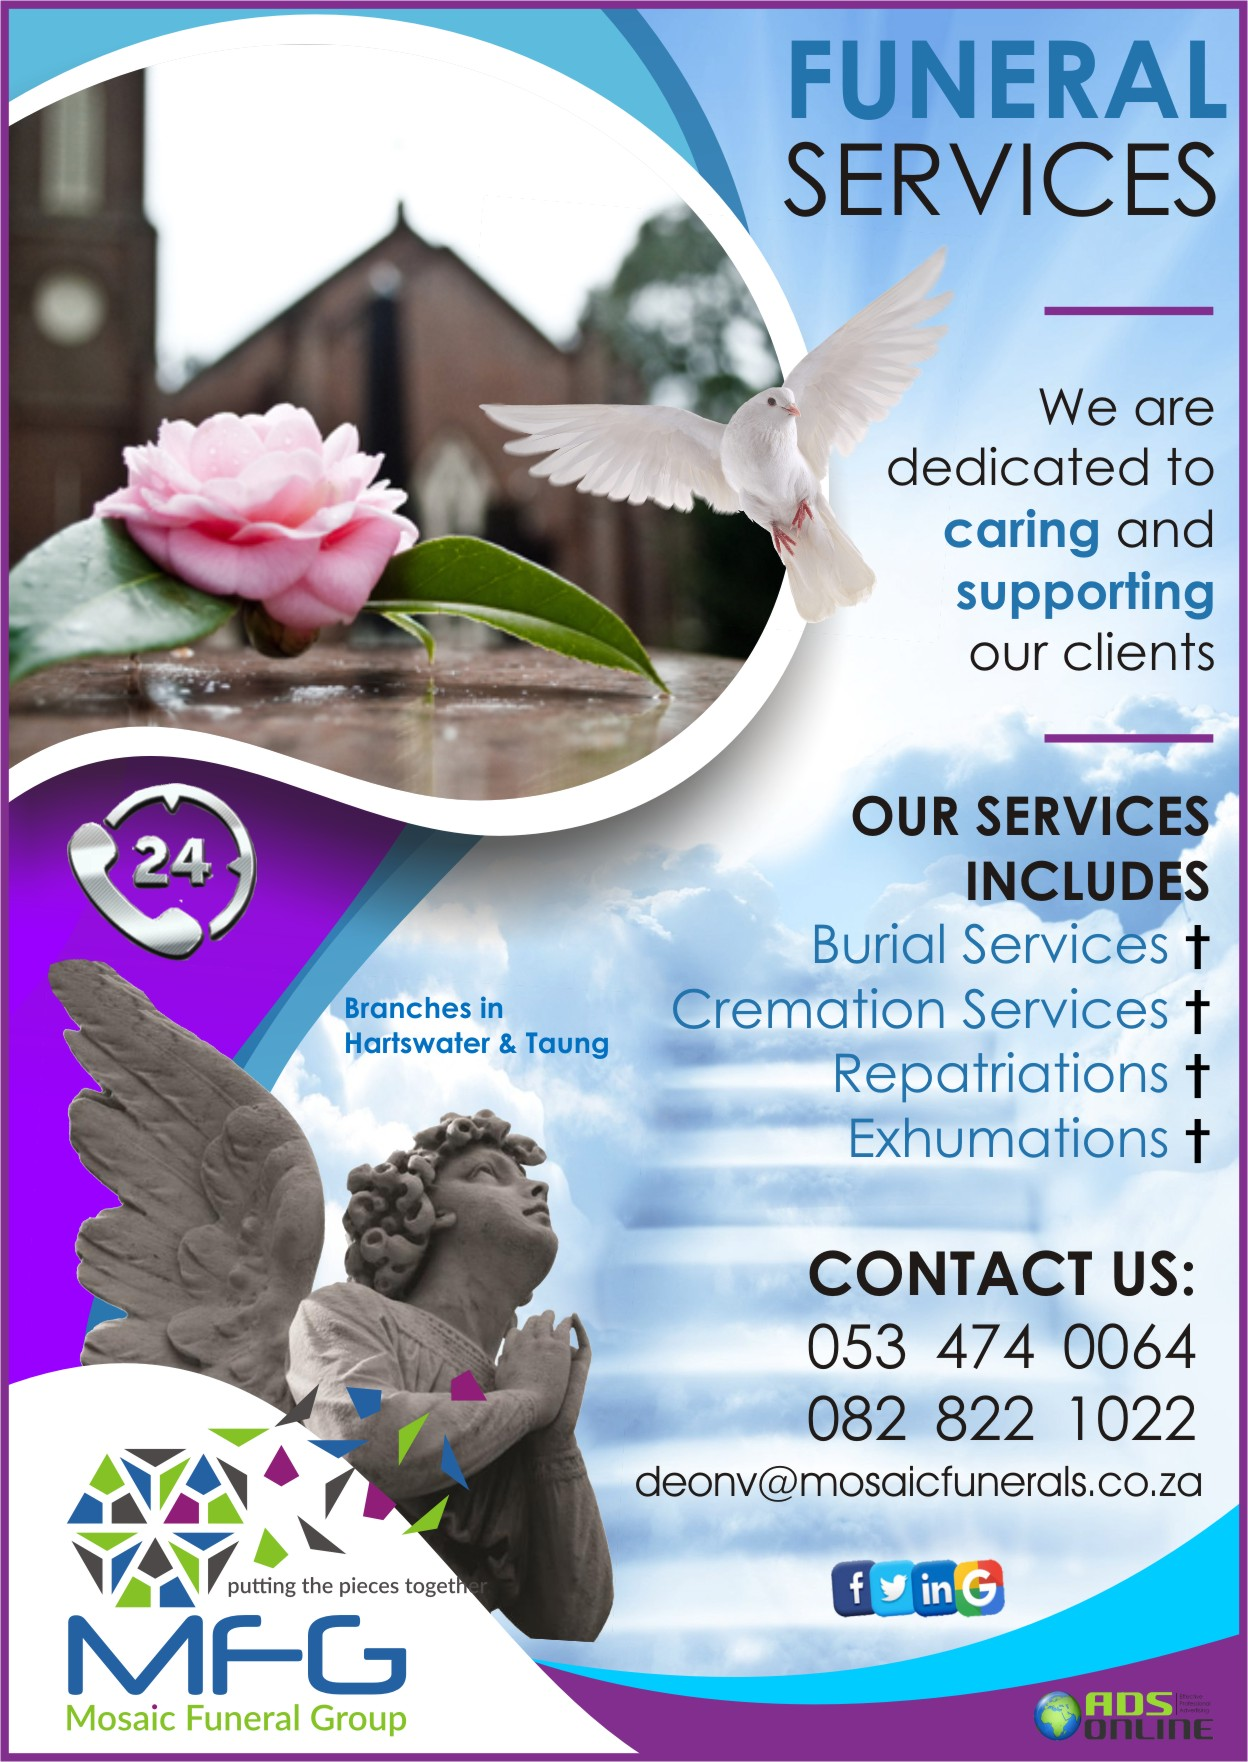 Mosaic Funeral Group (MFG) FUNERAL SERVICES | Hartswater, Limpopo